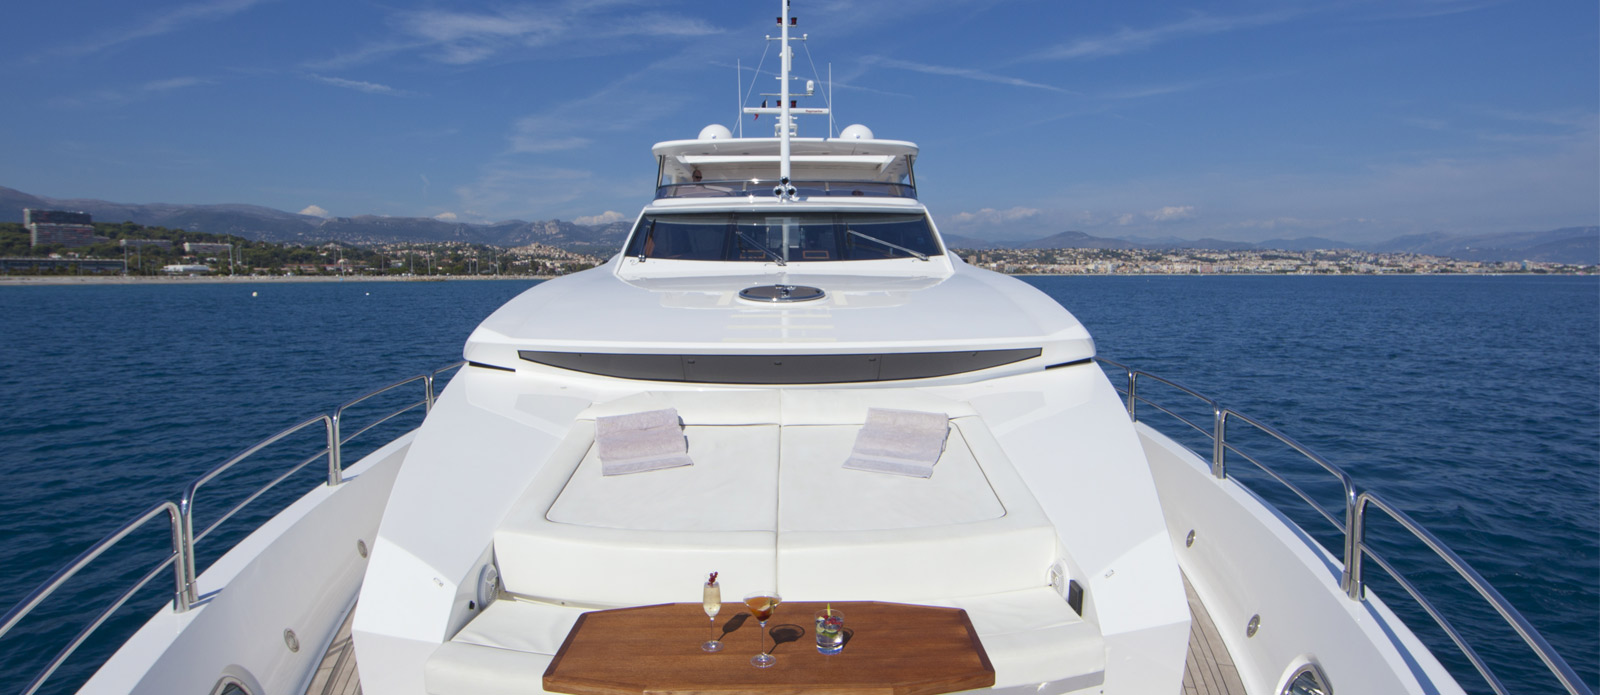 Sunseeker-30-Metre-Yacht-Tuppence-Bow-On